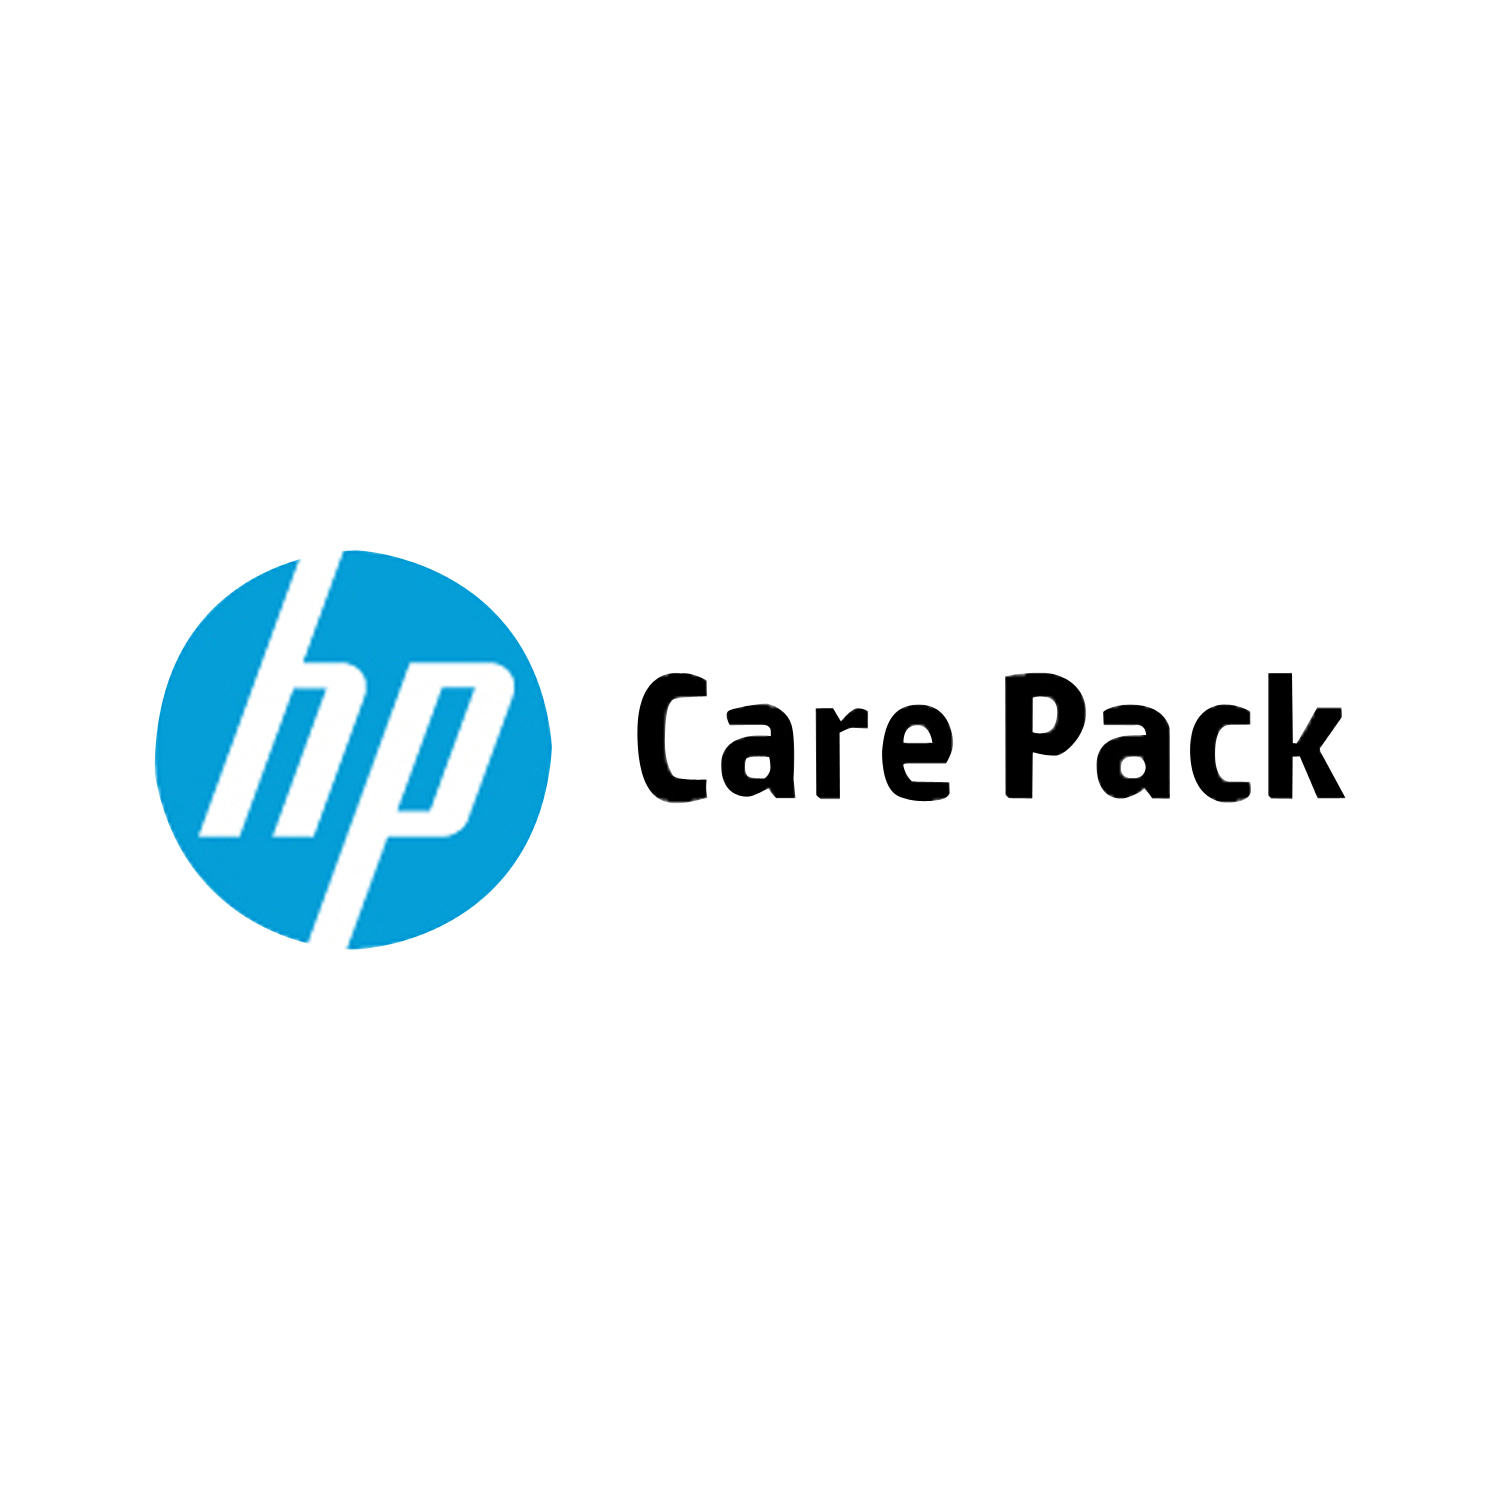 HP 5y Nbd/Disk Retention DT Only SVC